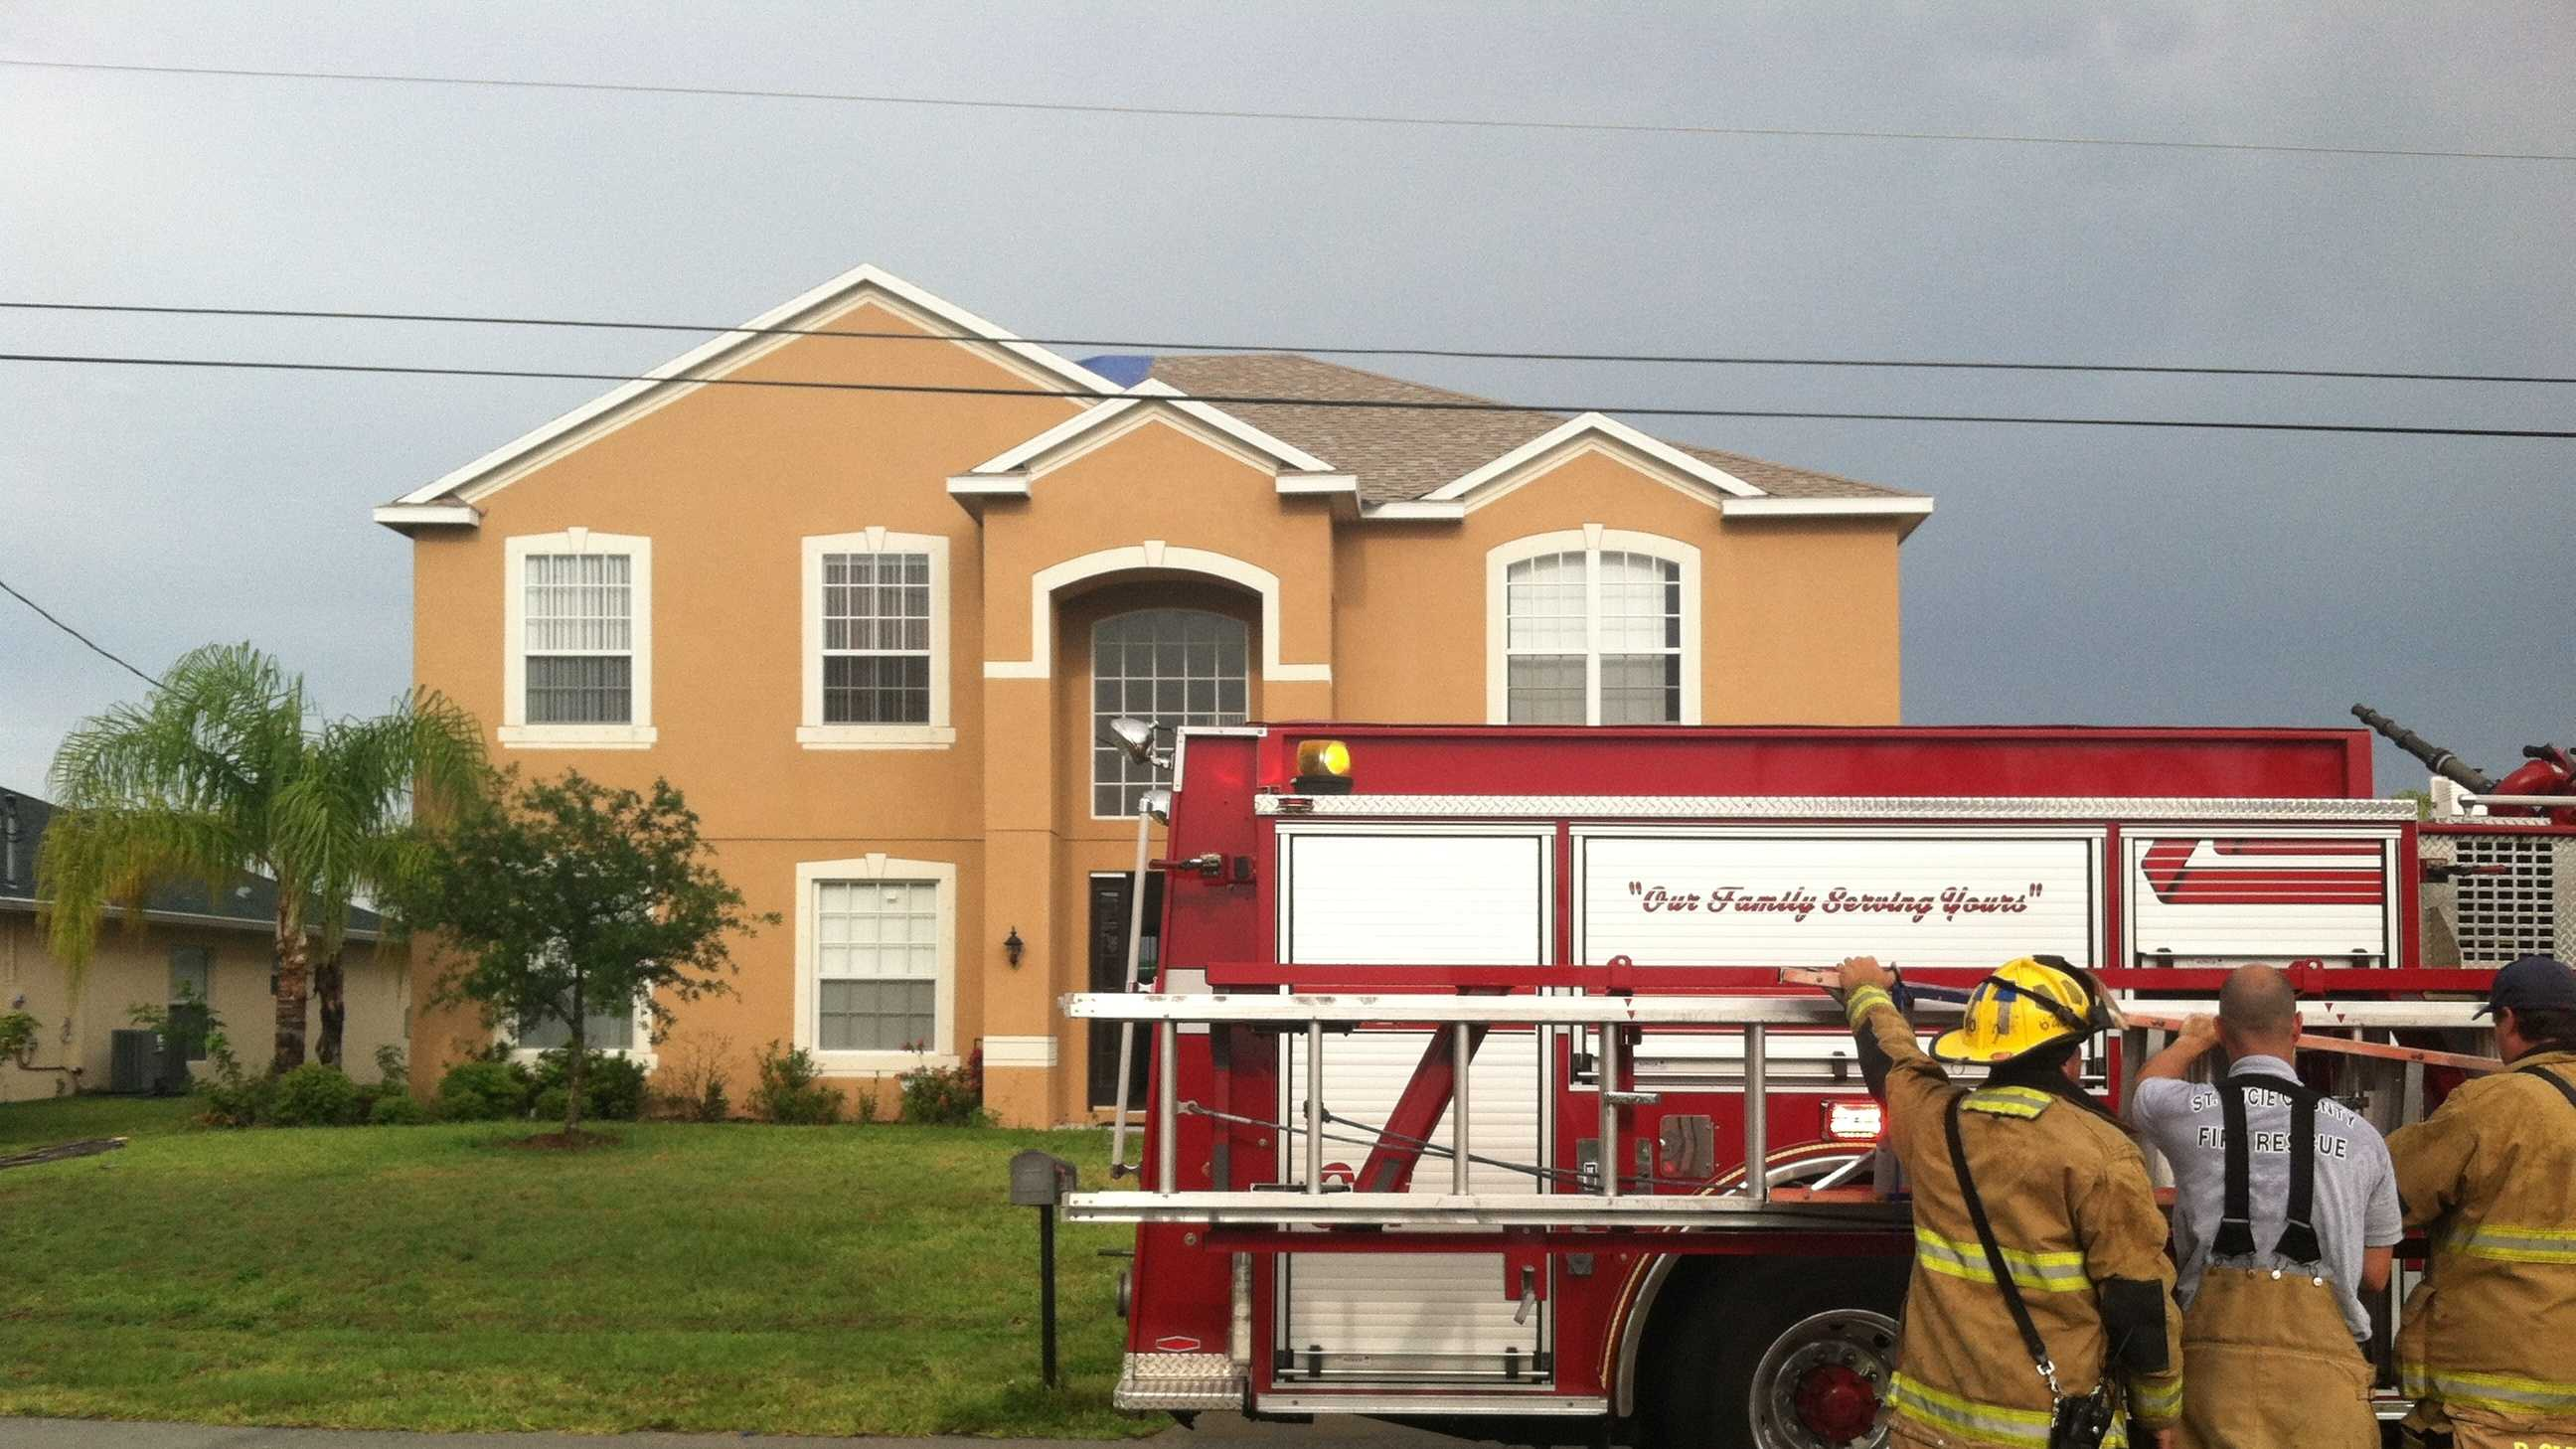 Firefighters say lightning struck this house in Port St. Lucie, causing the roof to catch on fire. (Erin Guy/WPBF)